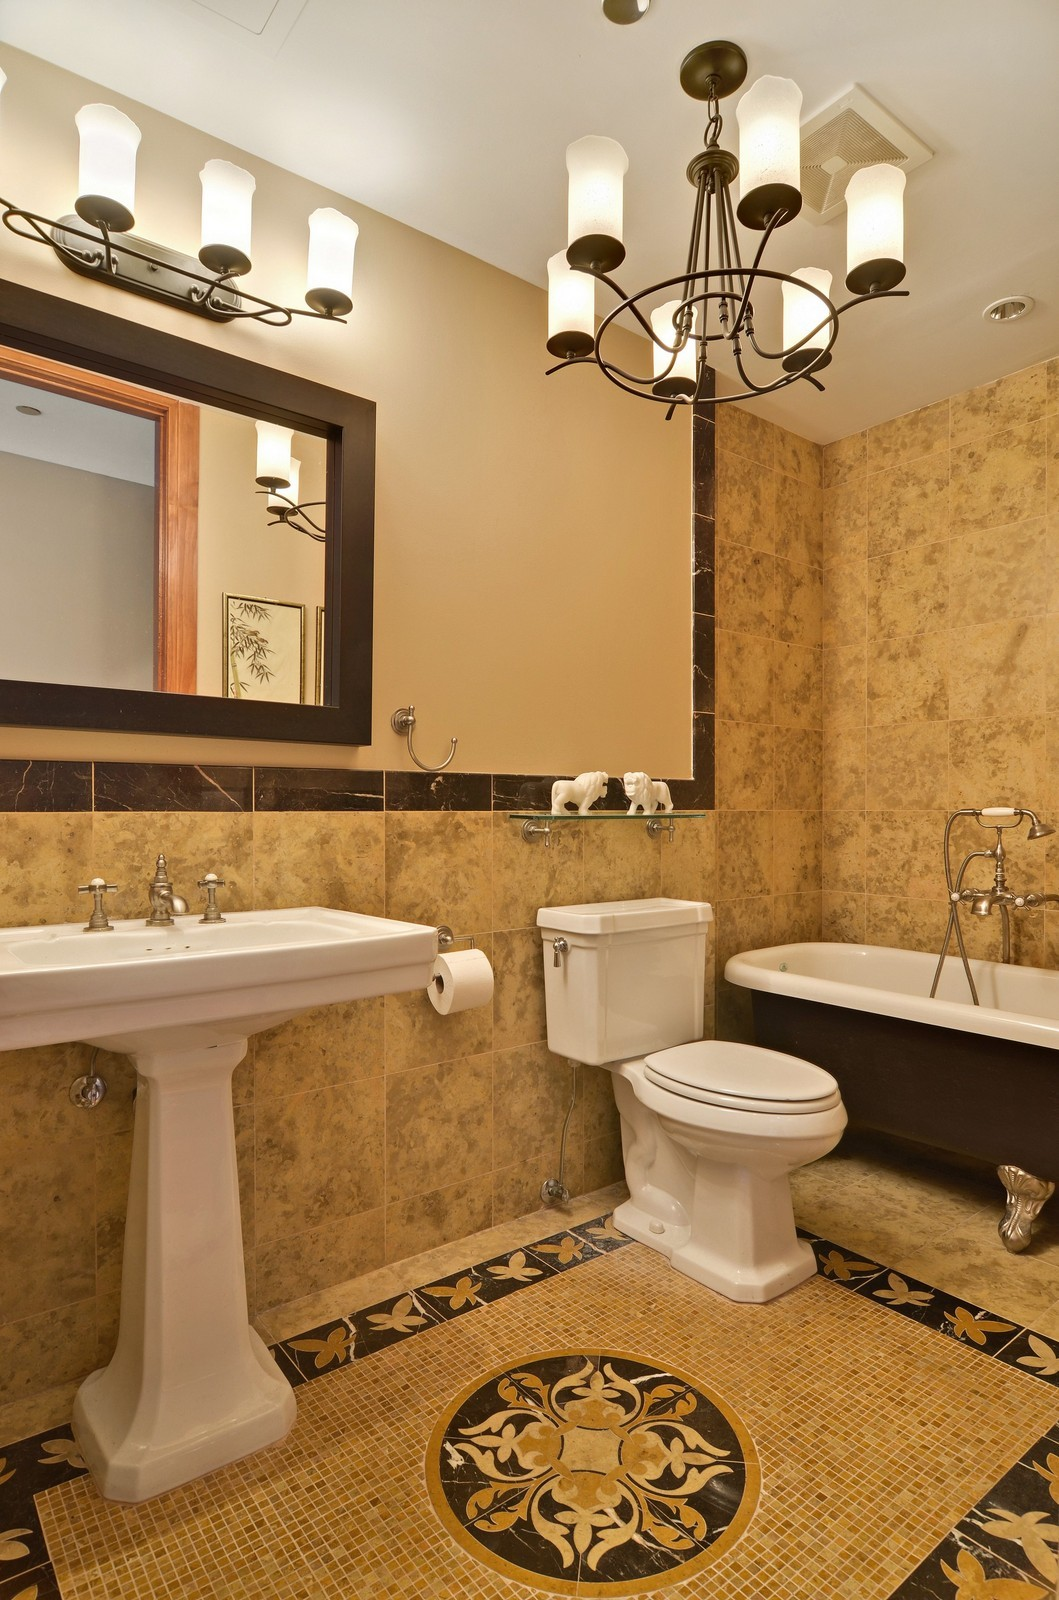 Real Estate Photography - 840 N Lake Shore Dr, Unit 201, Chicago, IL, 60611 - 3rd Bathroom